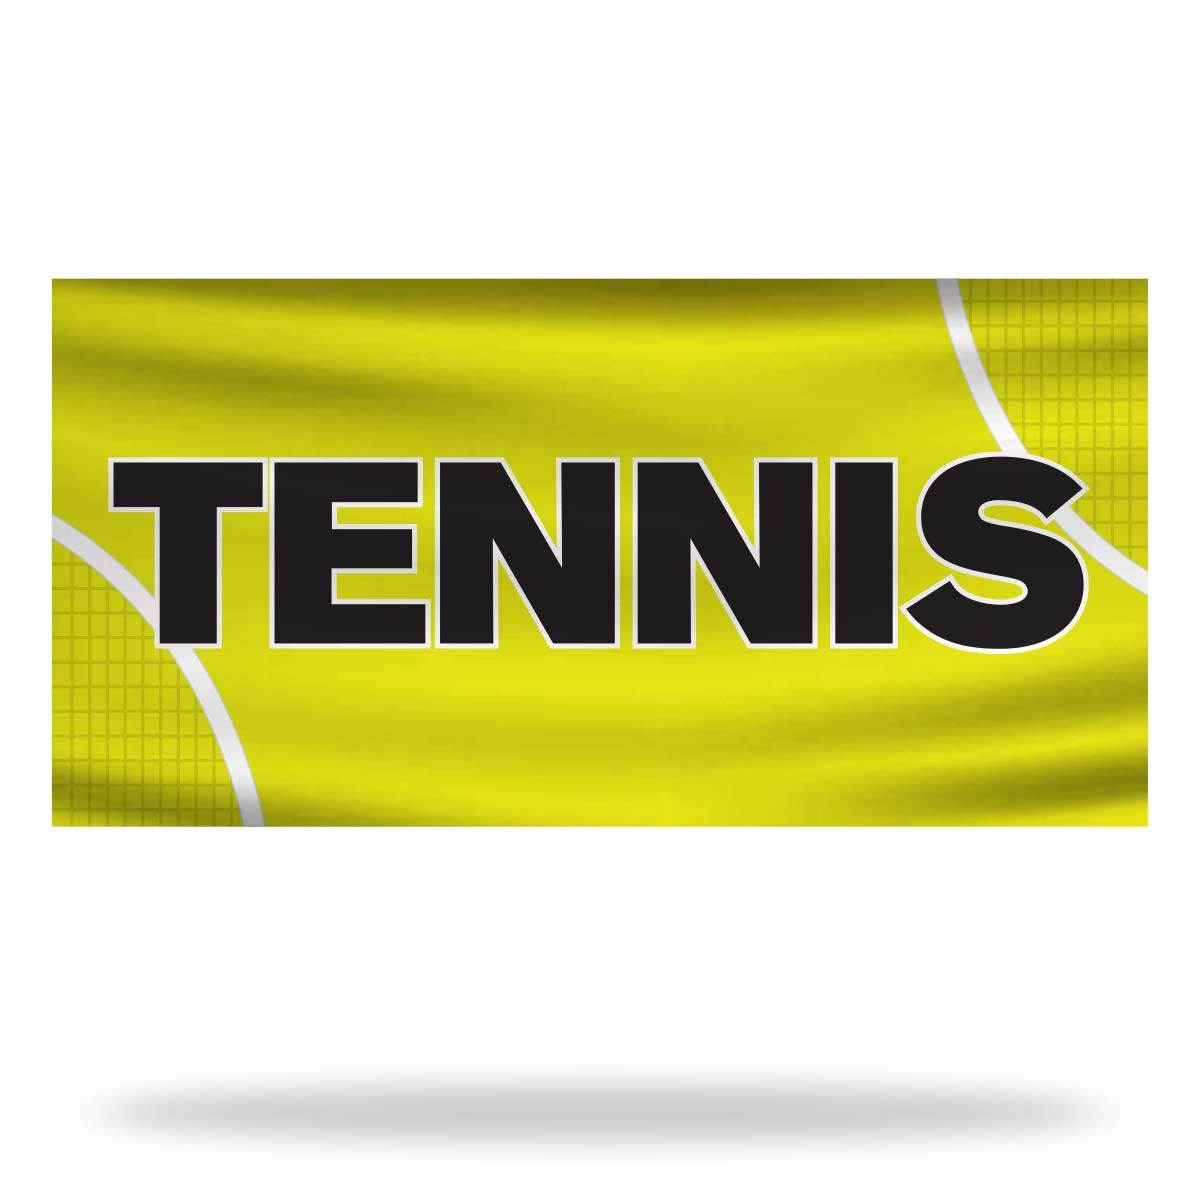 Tennis Flags & Banners Design 02